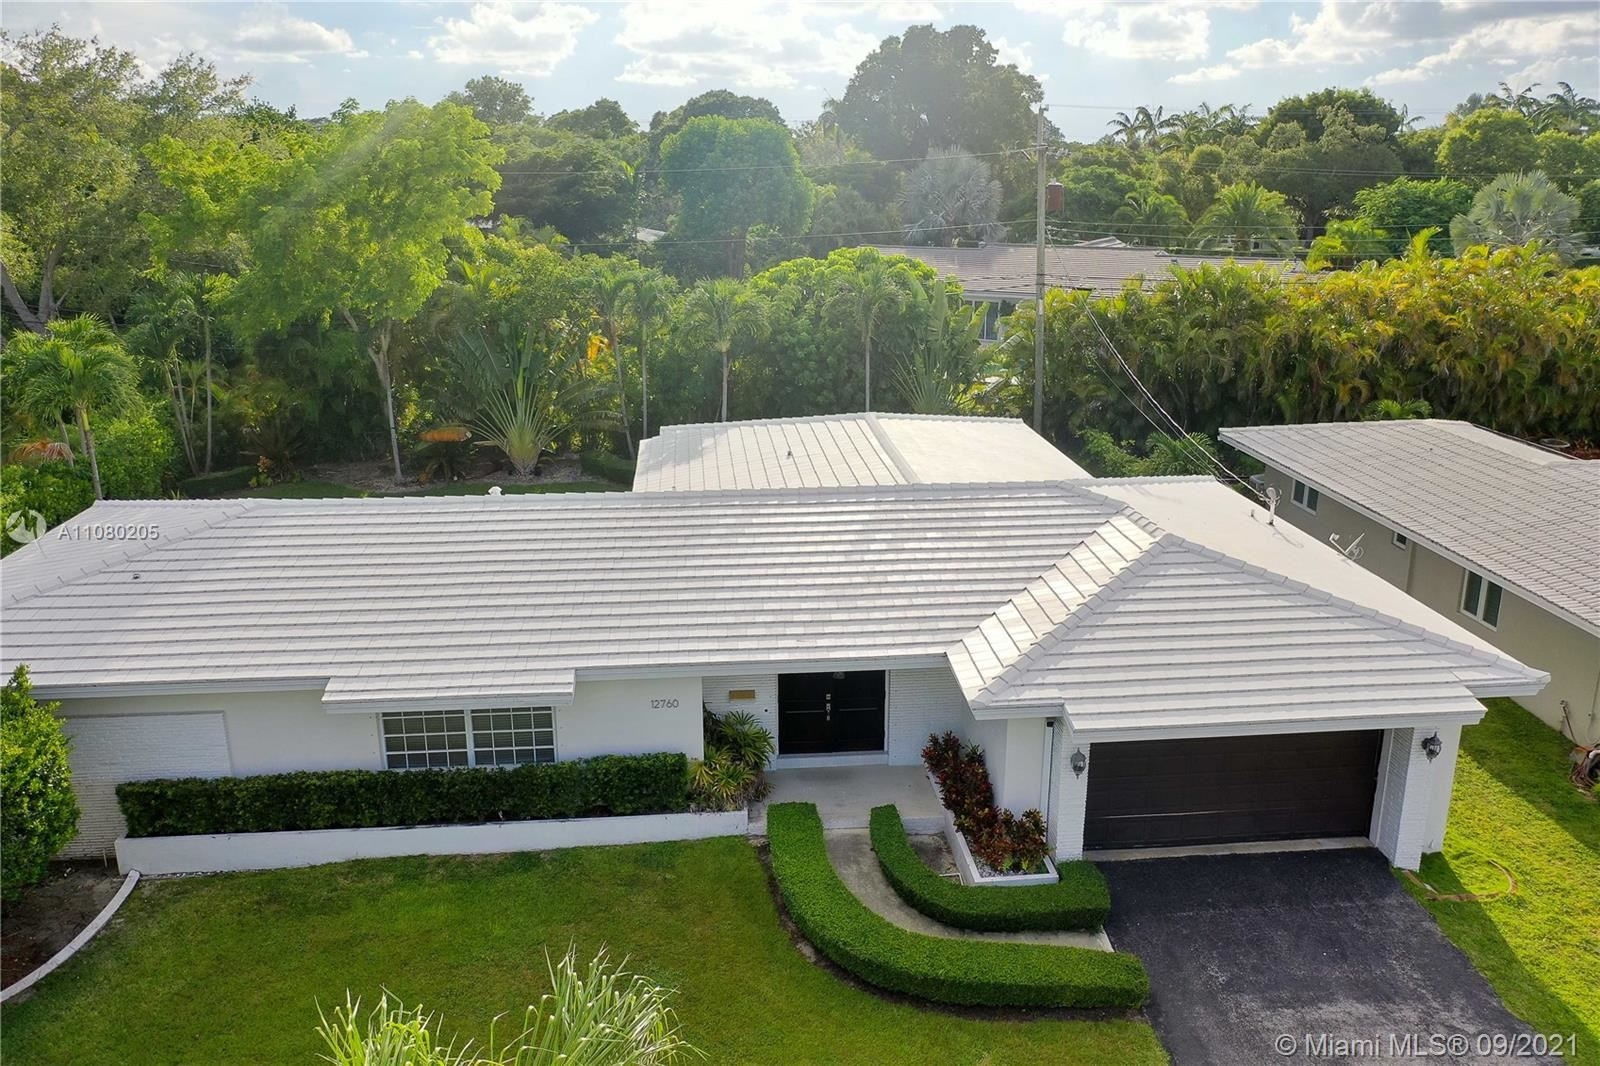 12760 Red Road, Coral Gables, FL 33156 - #: A11080205